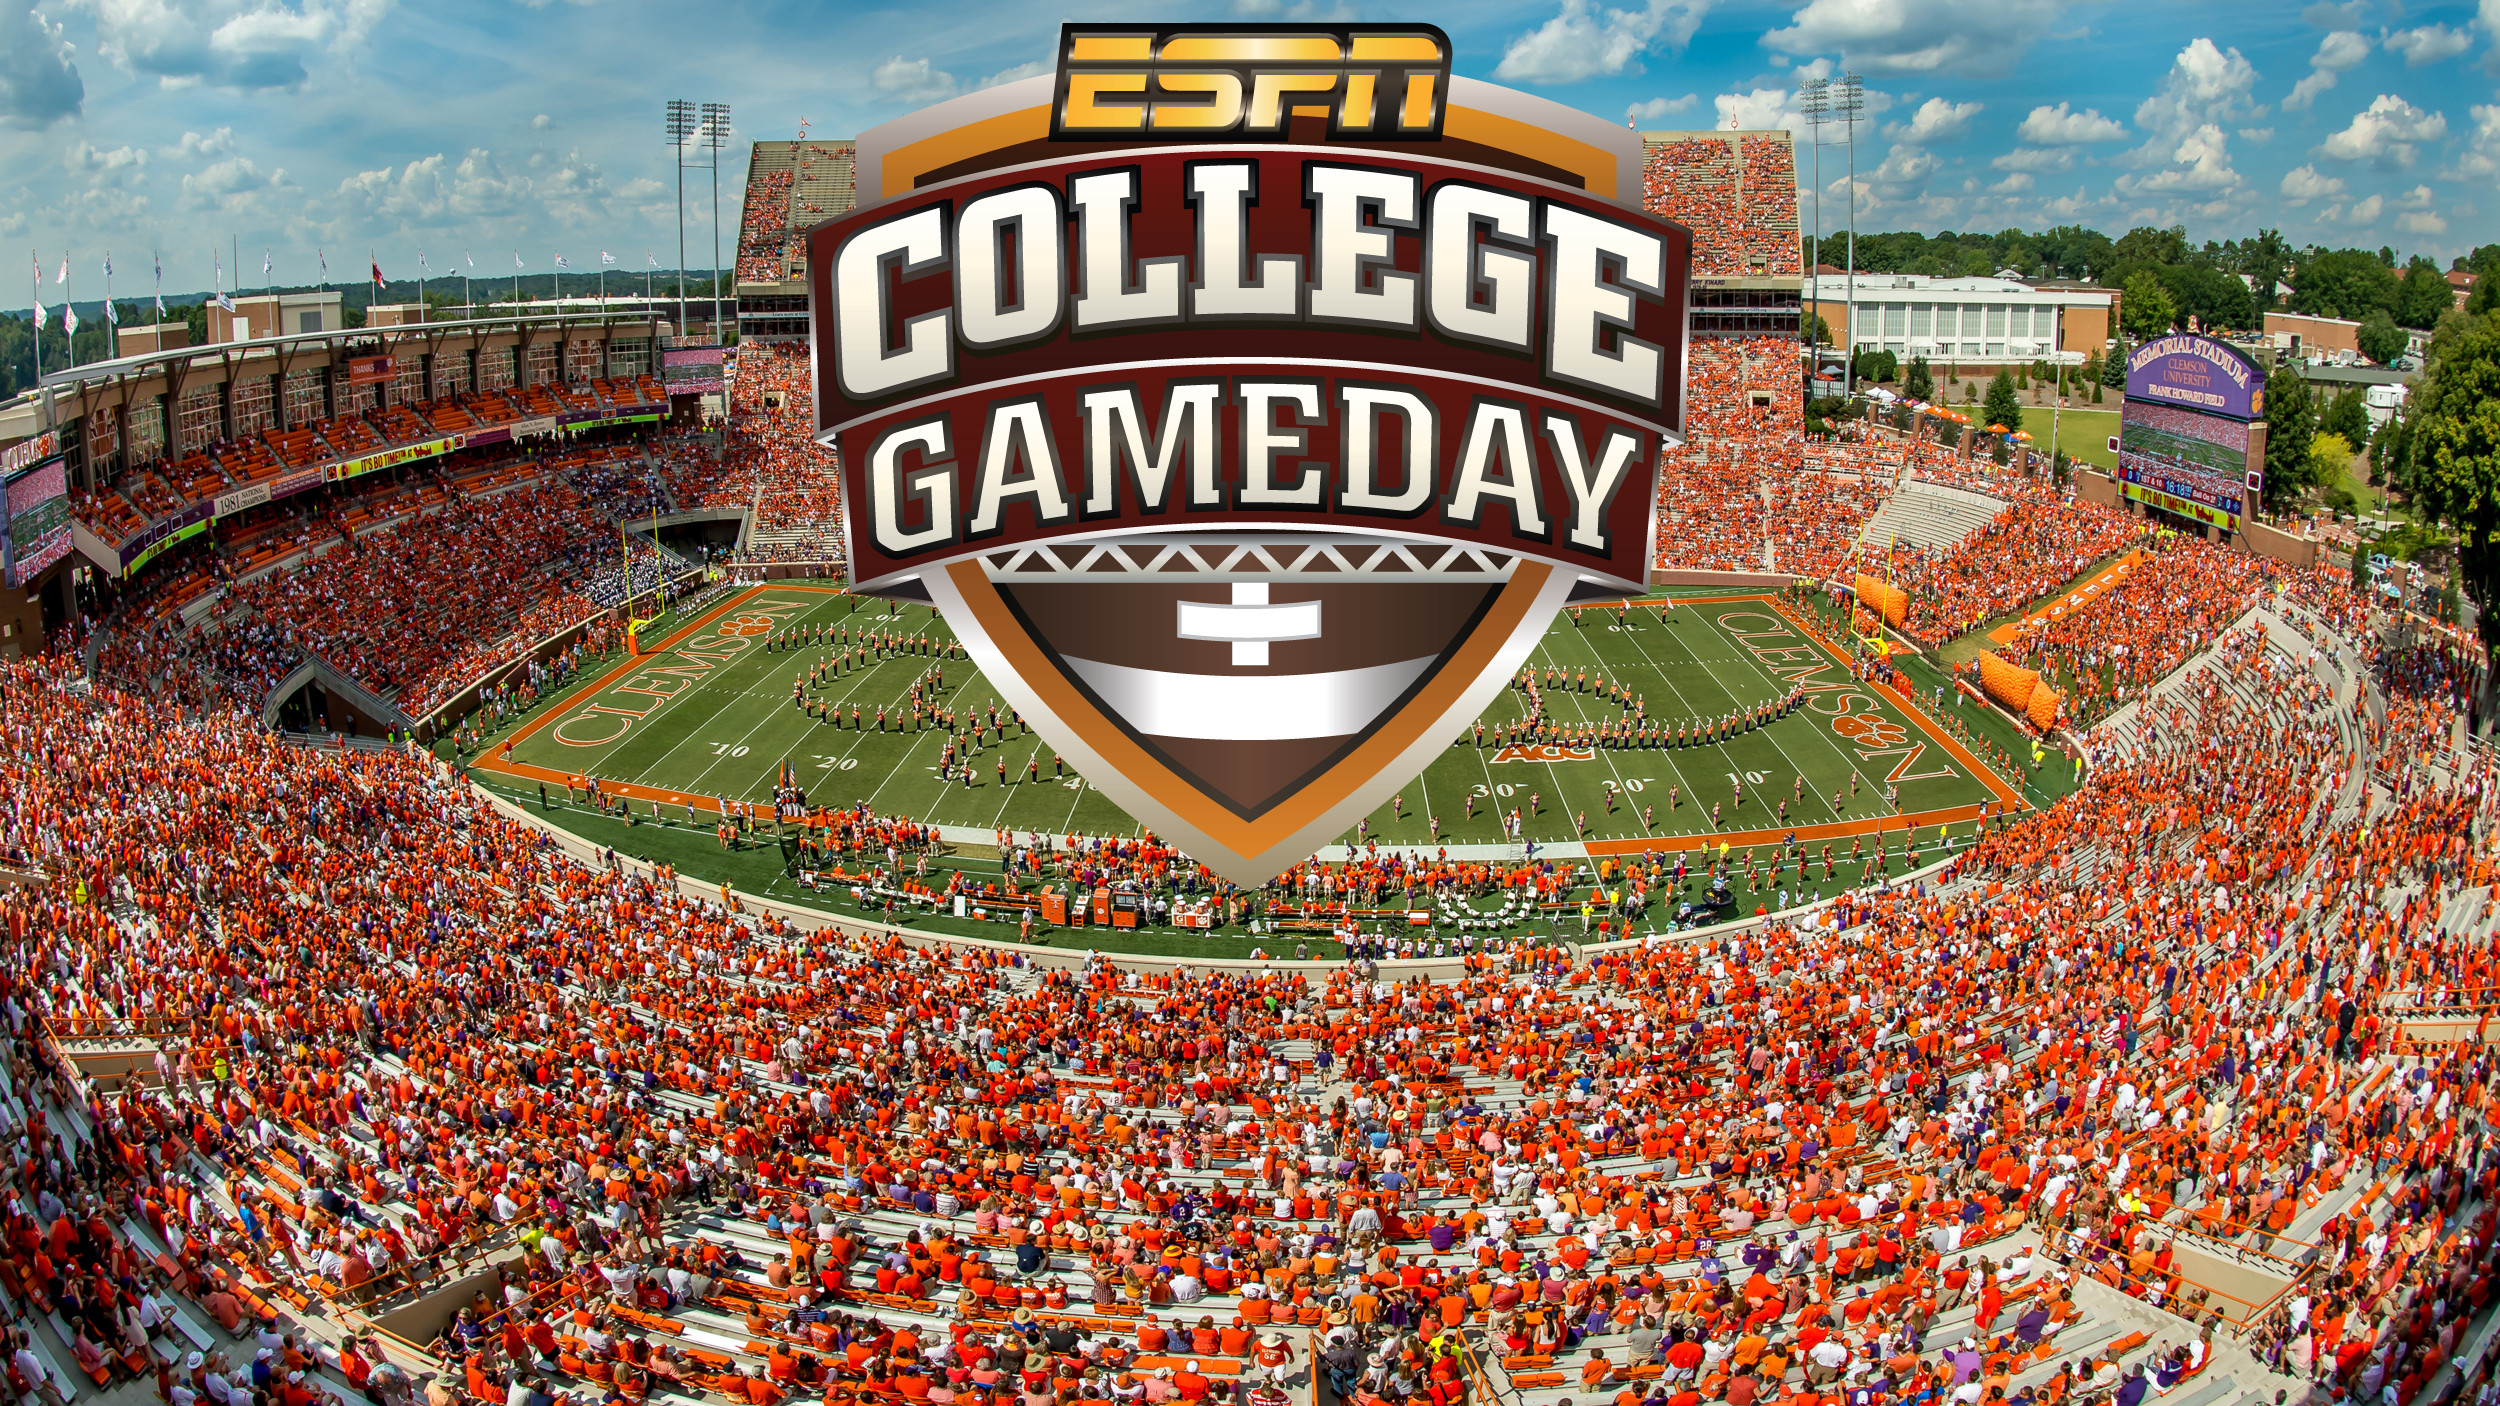 Clemson Invites Faculty, Staff, Students and Tiger Fans to Bowman Field for ESPN College GameDay